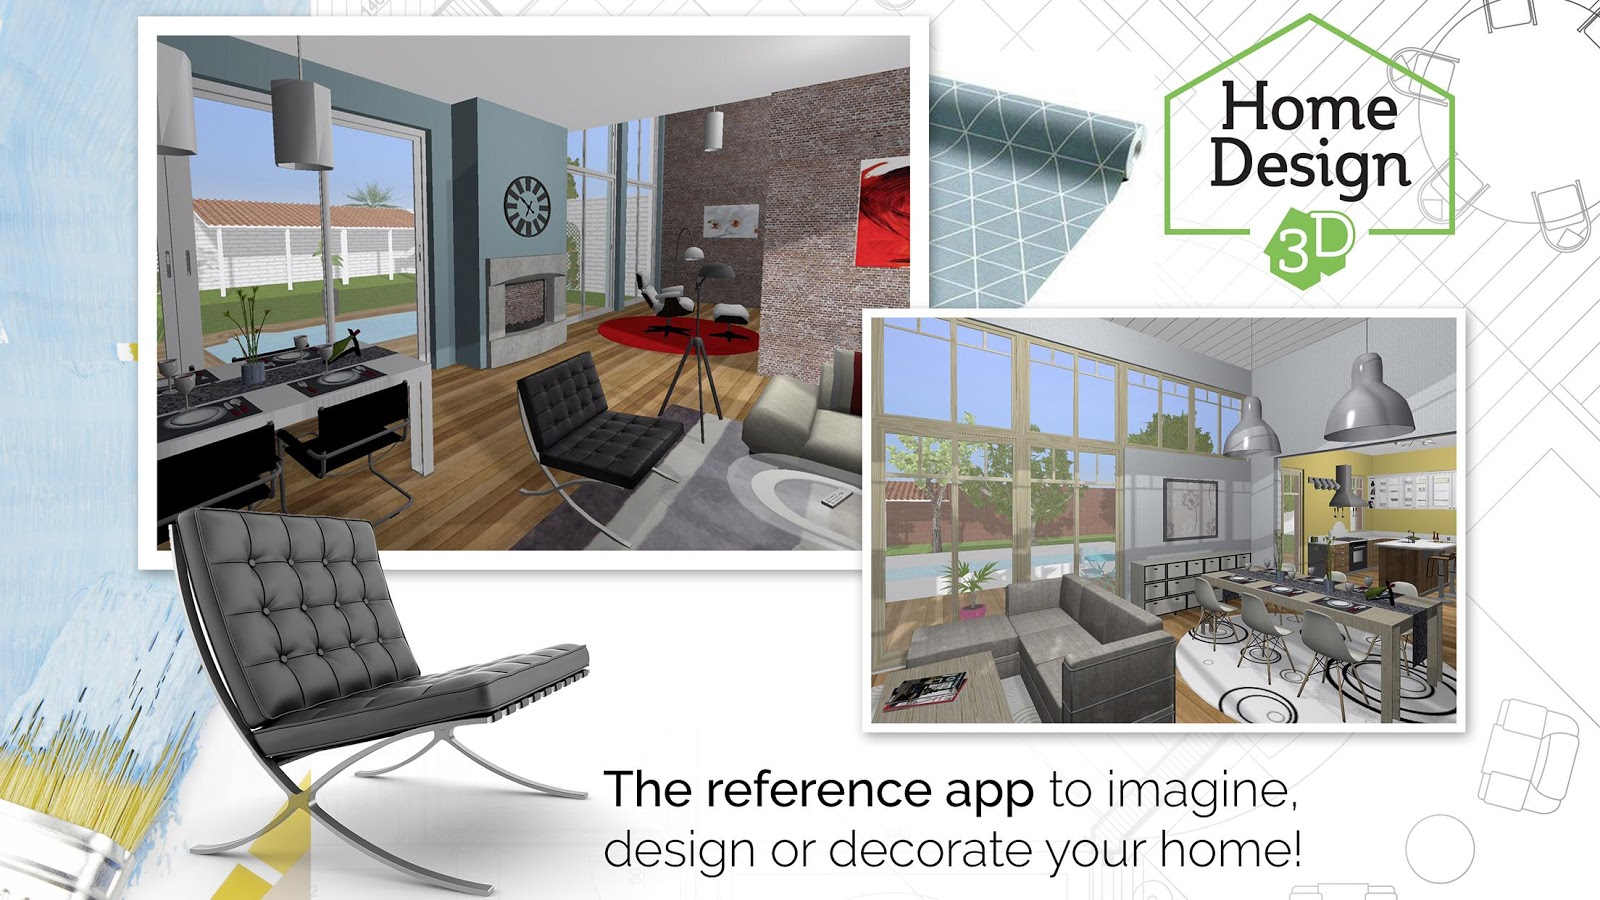 Home design 3d freemium android apps on google play Home design app games